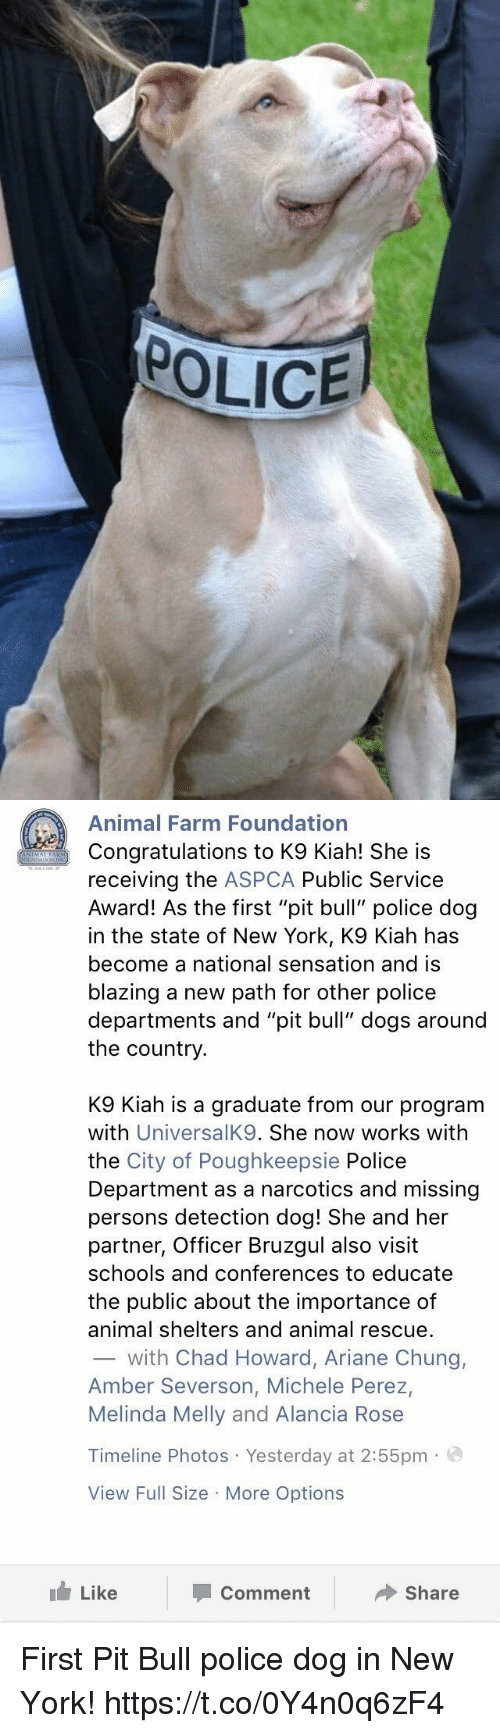 "Aspca: POLICE   Animal Farm Foundation  Congratulations to K9 Kiah! She is  receiving the  ASPCA Public Service  Award! As the first ""pit bull"" police dog  in the state of New York, K9 Kiah has  become a national sensation and is  blazing a new path for other police  departments and ""pit bull"" dogs around  the country  K9 Kiah is a graduate from our program  with  UniversalK9. She now works with  the City of Poughkeepsie Police  Department as a narcotics and missing  persons detection dog! She and her  partner, Officer Bruzgul also visit  schools and conferences to educate  the public about the importance of  animal shelters and animal rescue.  with Chad Howard, Ariane Chung,  Amber Severson, Michele Perez,  Melinda Melly and Alancia Rose  Timeline Photos Yesterday at 2:55pm  a  View Full Size More Options  Like  Share  Comment First Pit Bull police dog in New York! https://t.co/0Y4n0q6zF4"